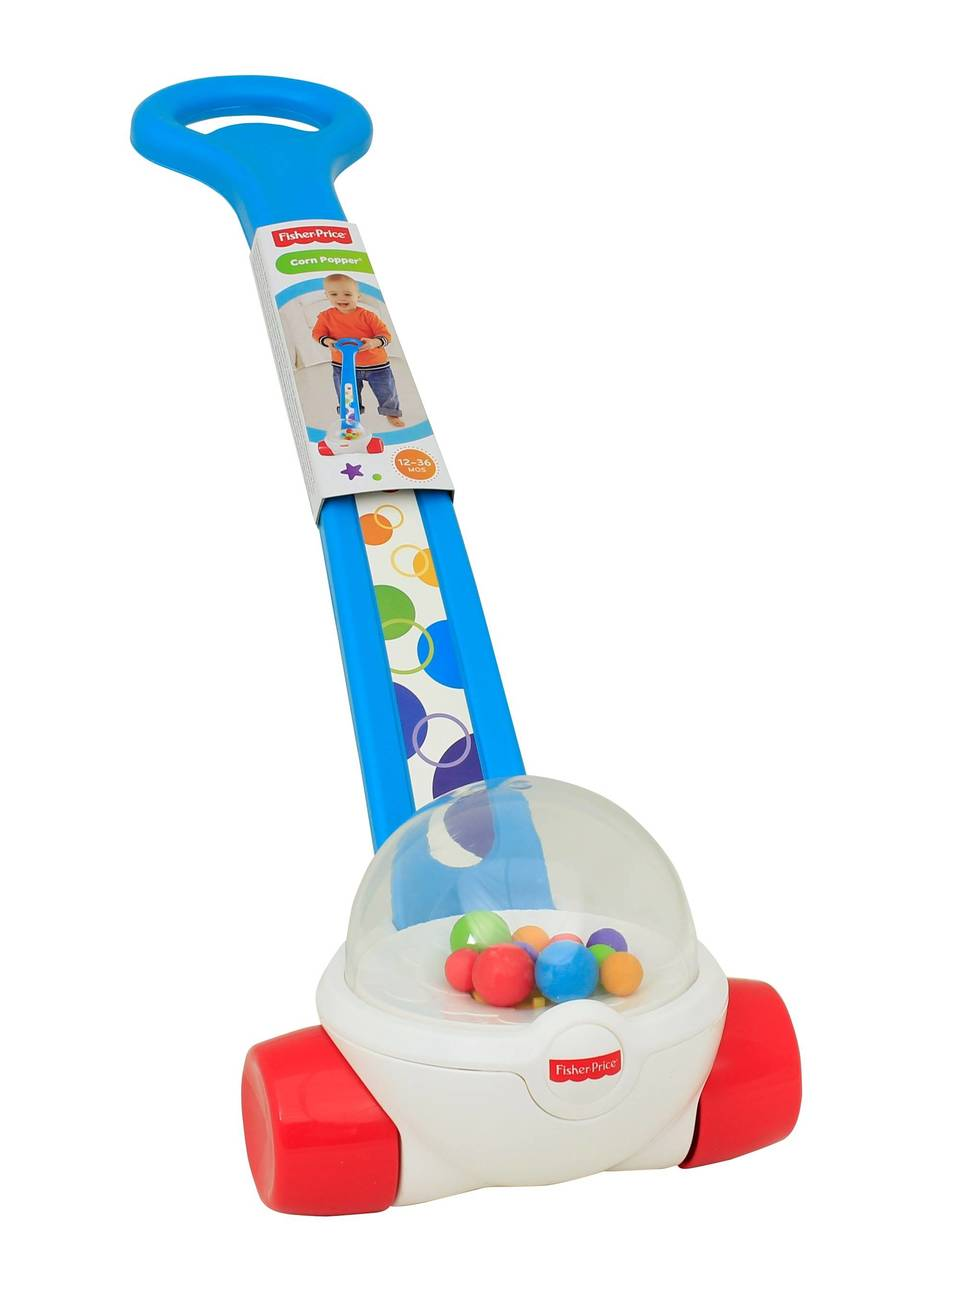 Fisher-Price Classic Corn Popper - Walmart.com